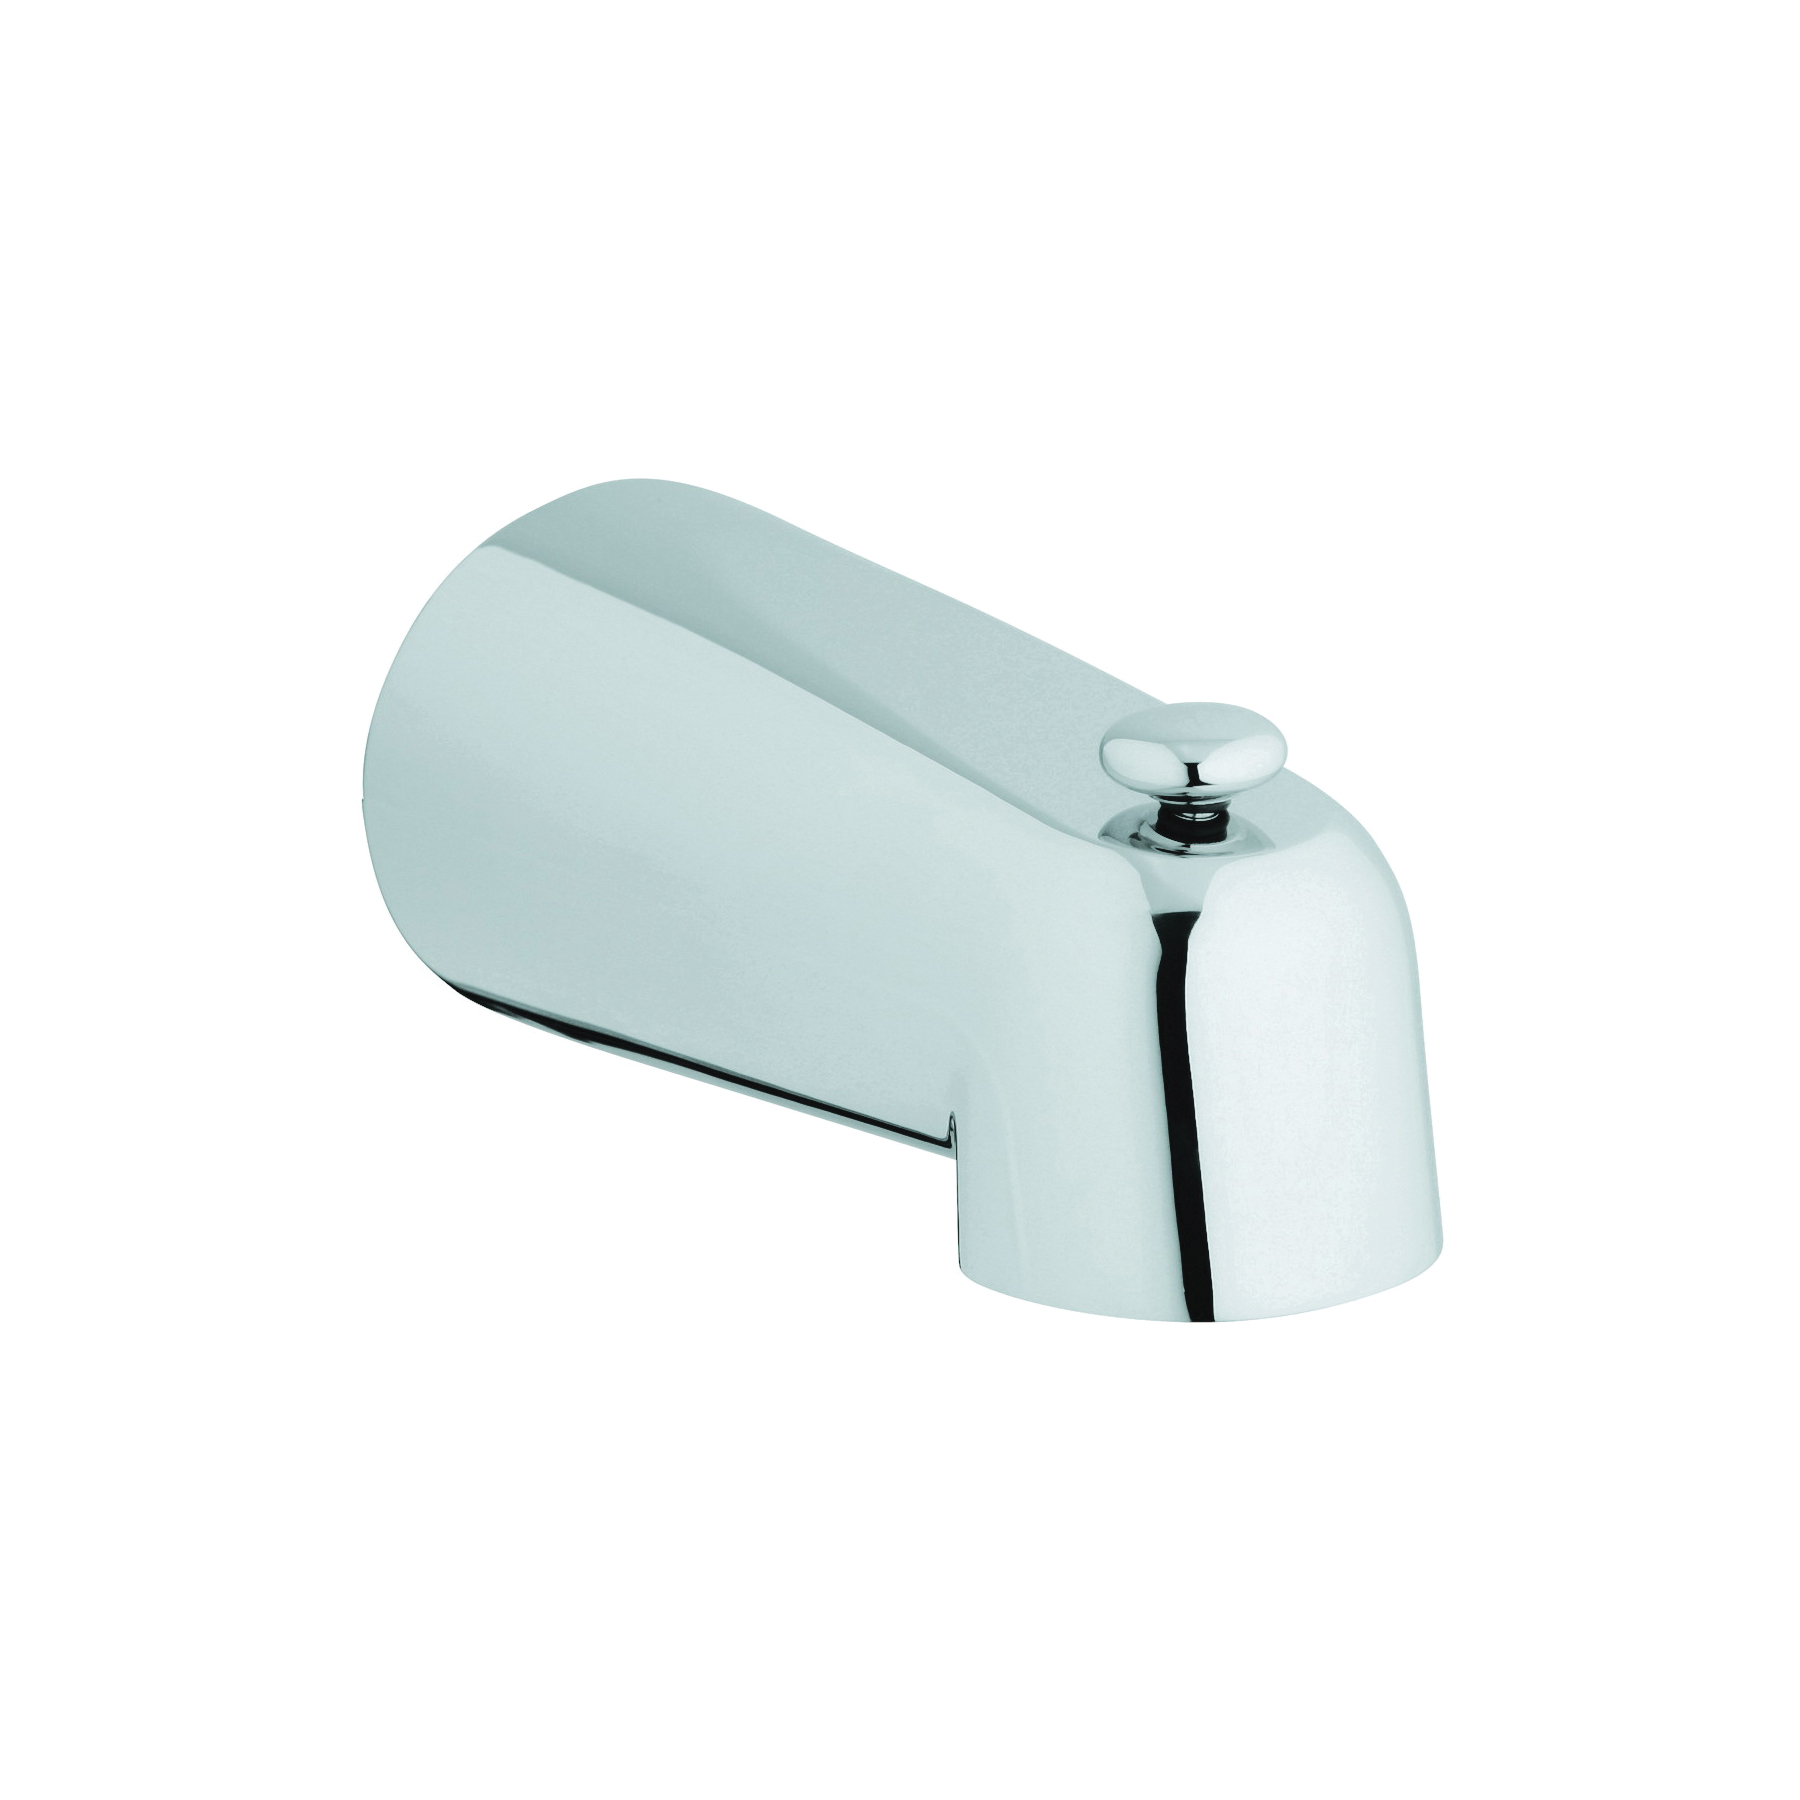 GROHE 13611000 Classic Tub Spout With Diverter, 5-1/2 in L, Brass, Chrome Plated, Import